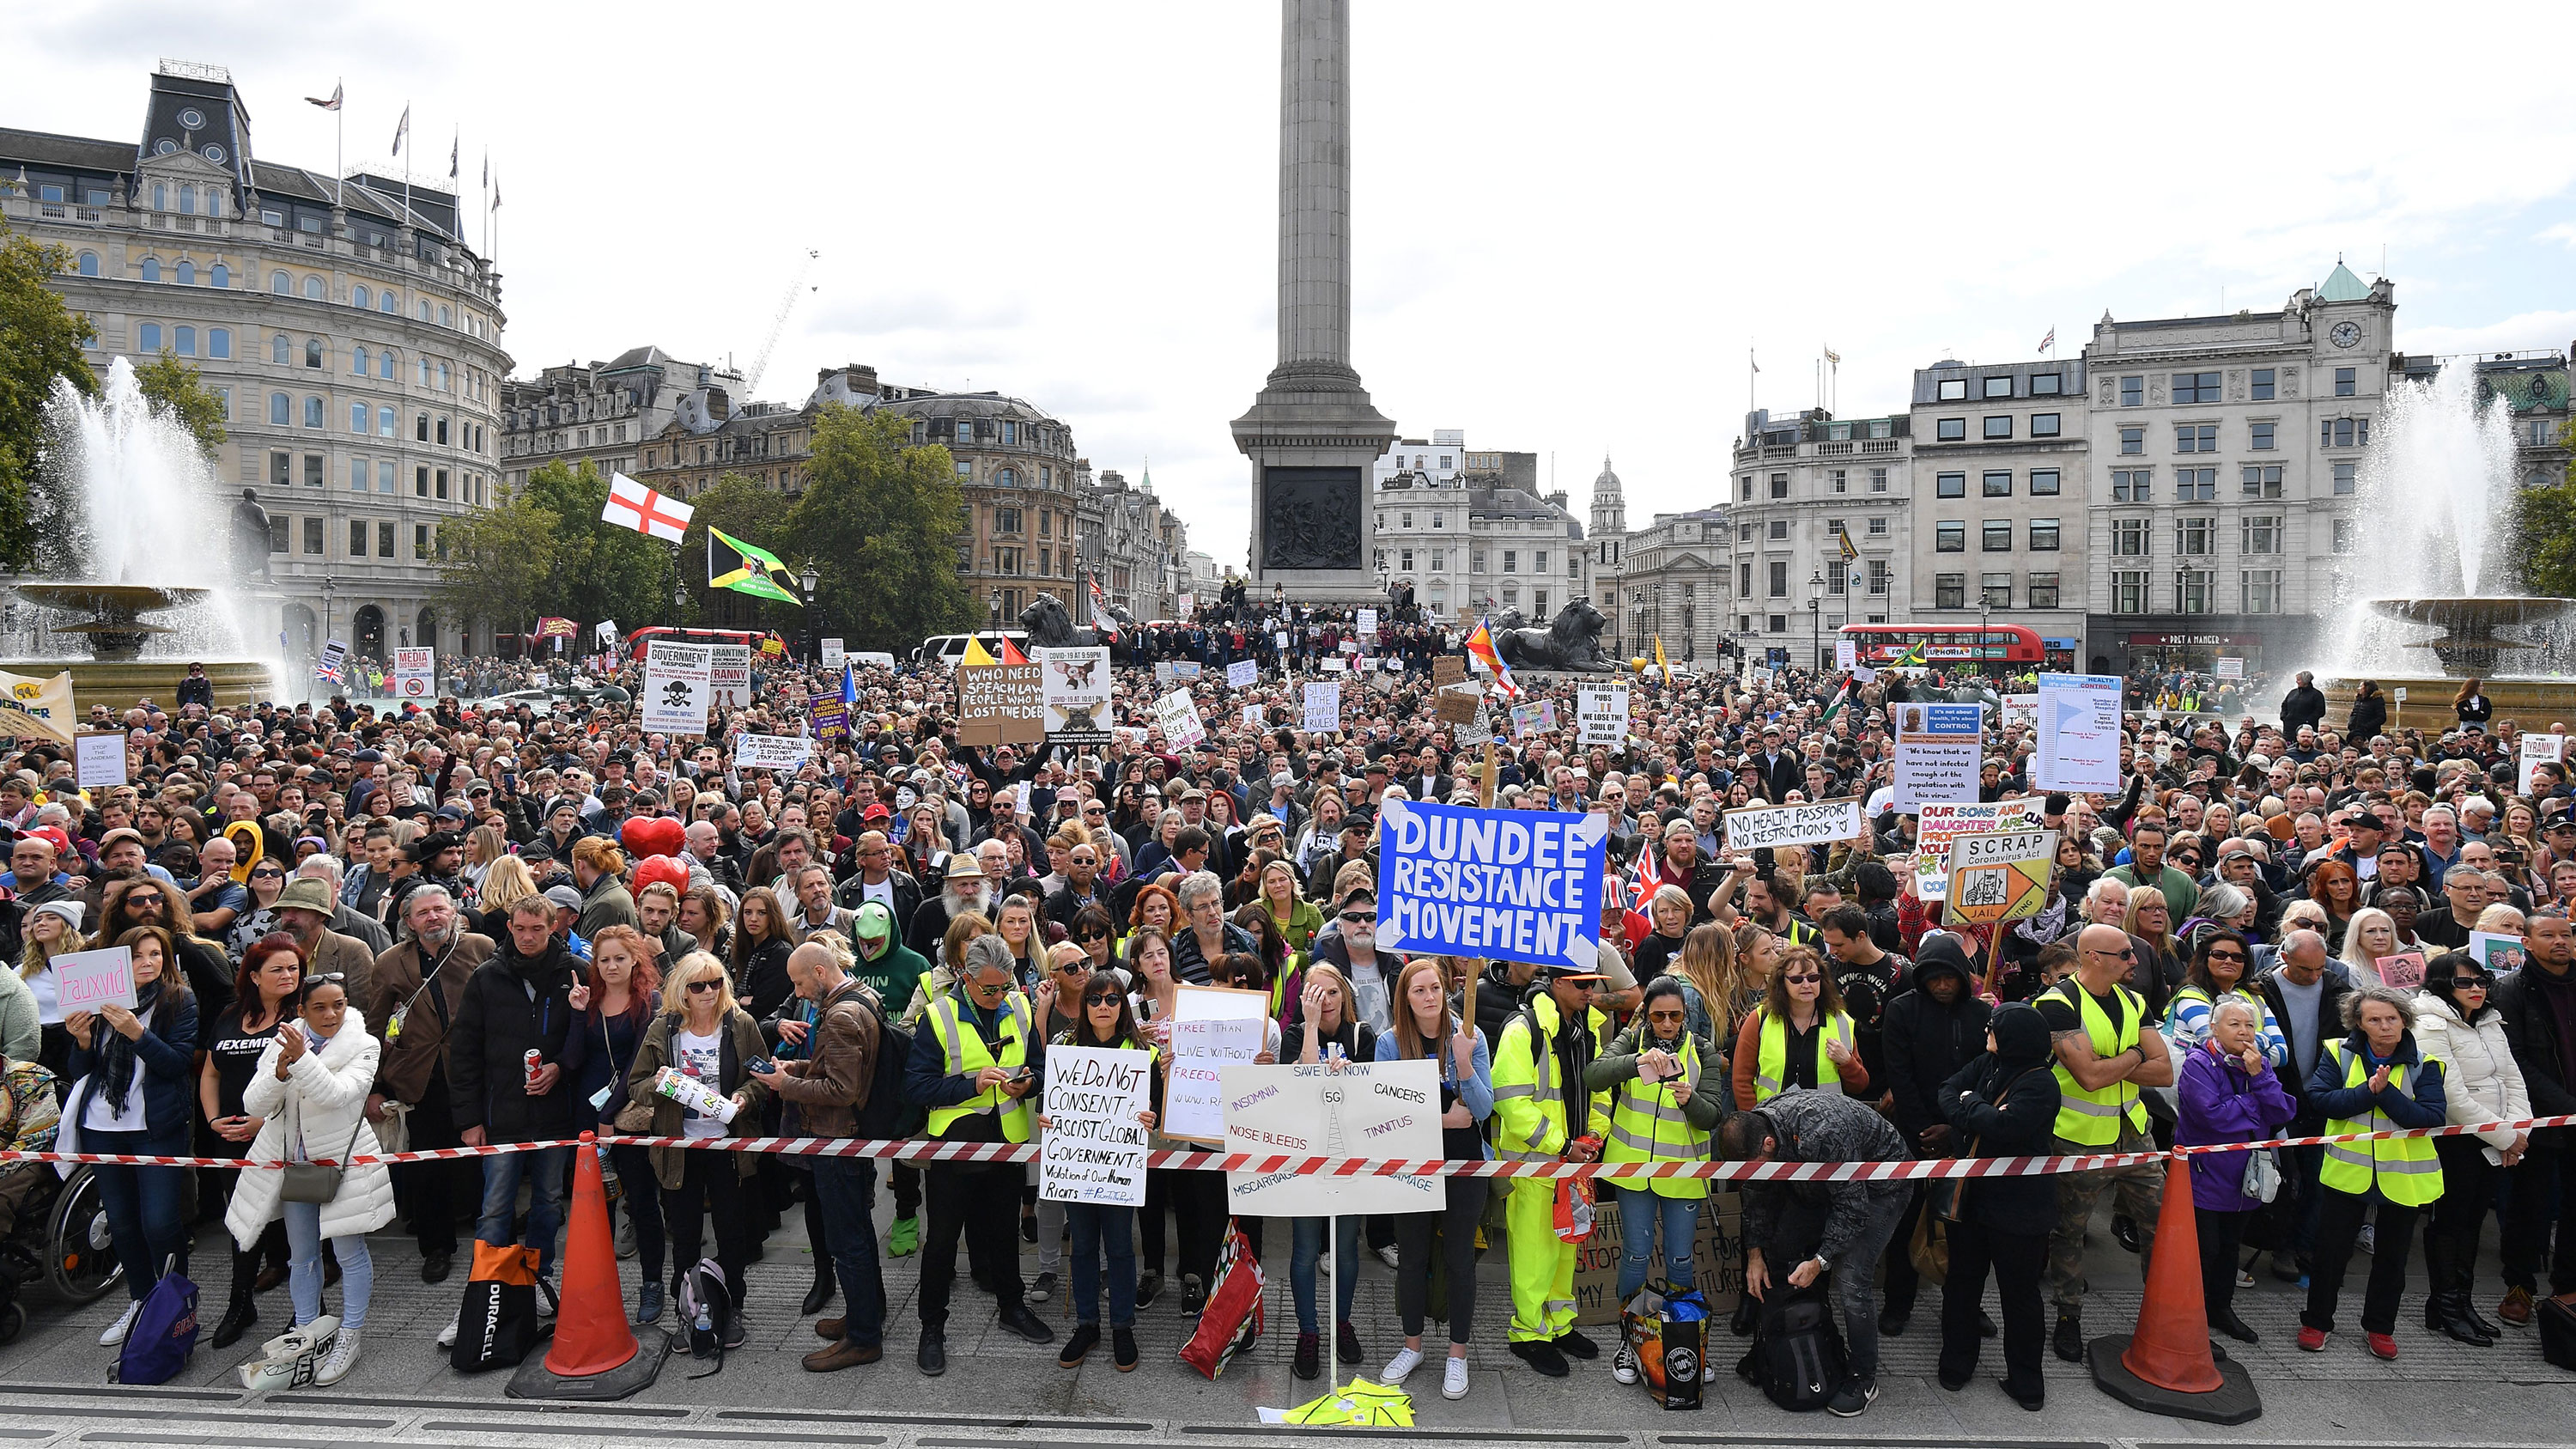 Protesters gather in Trafalgar Square for a rally against vaccination and government restrictions designed to fight the spread of the novel coronavirus, in London on September 26.